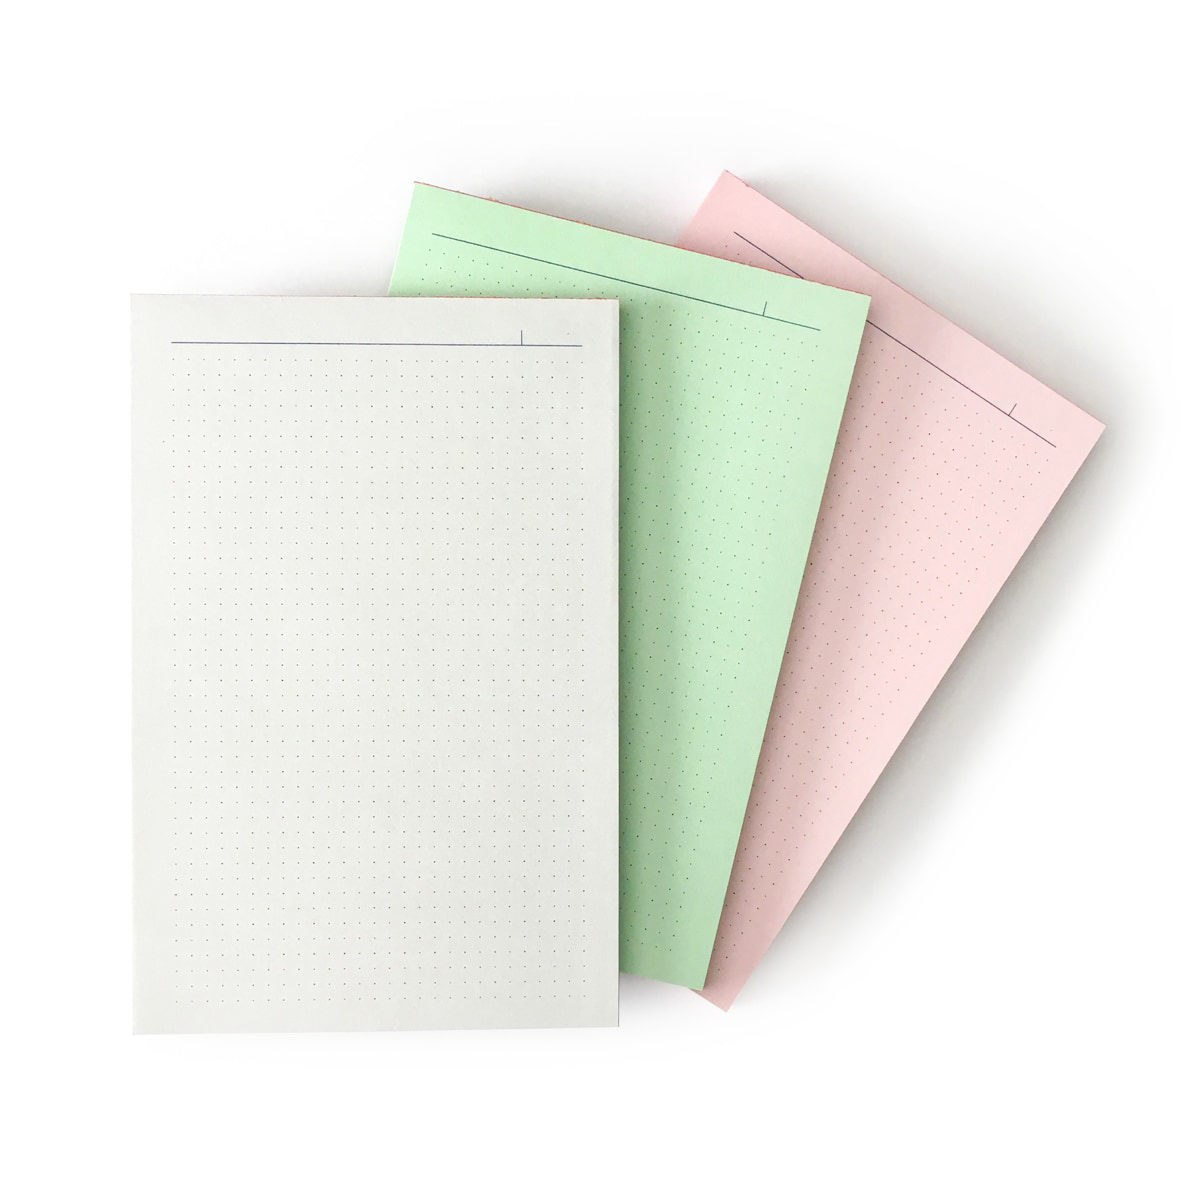 array of risograph printed notepads in gray, green and pink with navy blue dot pattern